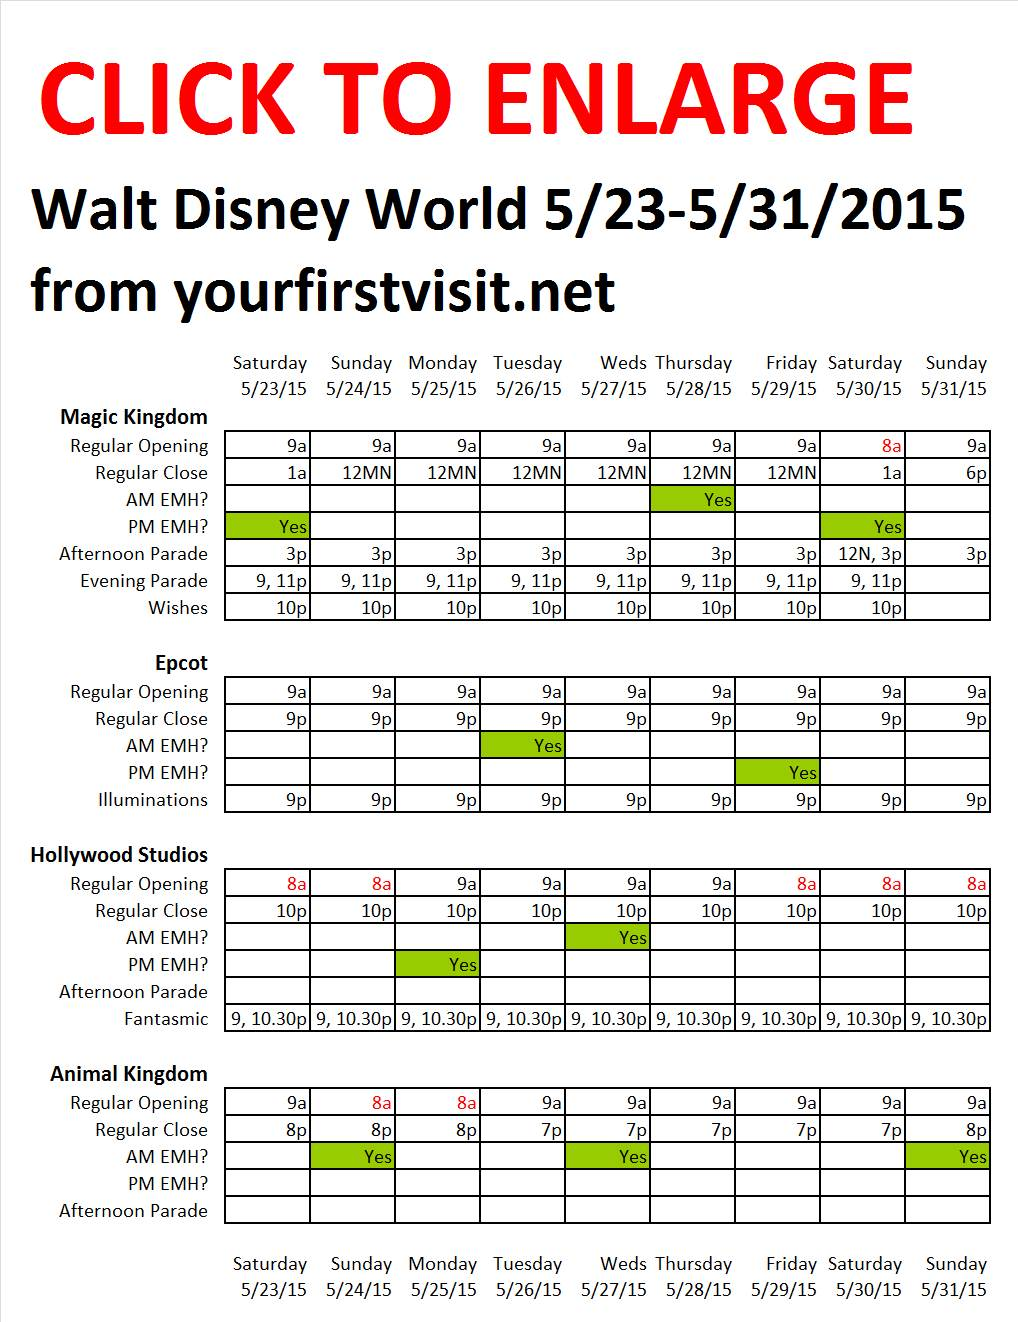 Disney World 5-23 to 5-31-2015 from yourfirstvisit.net